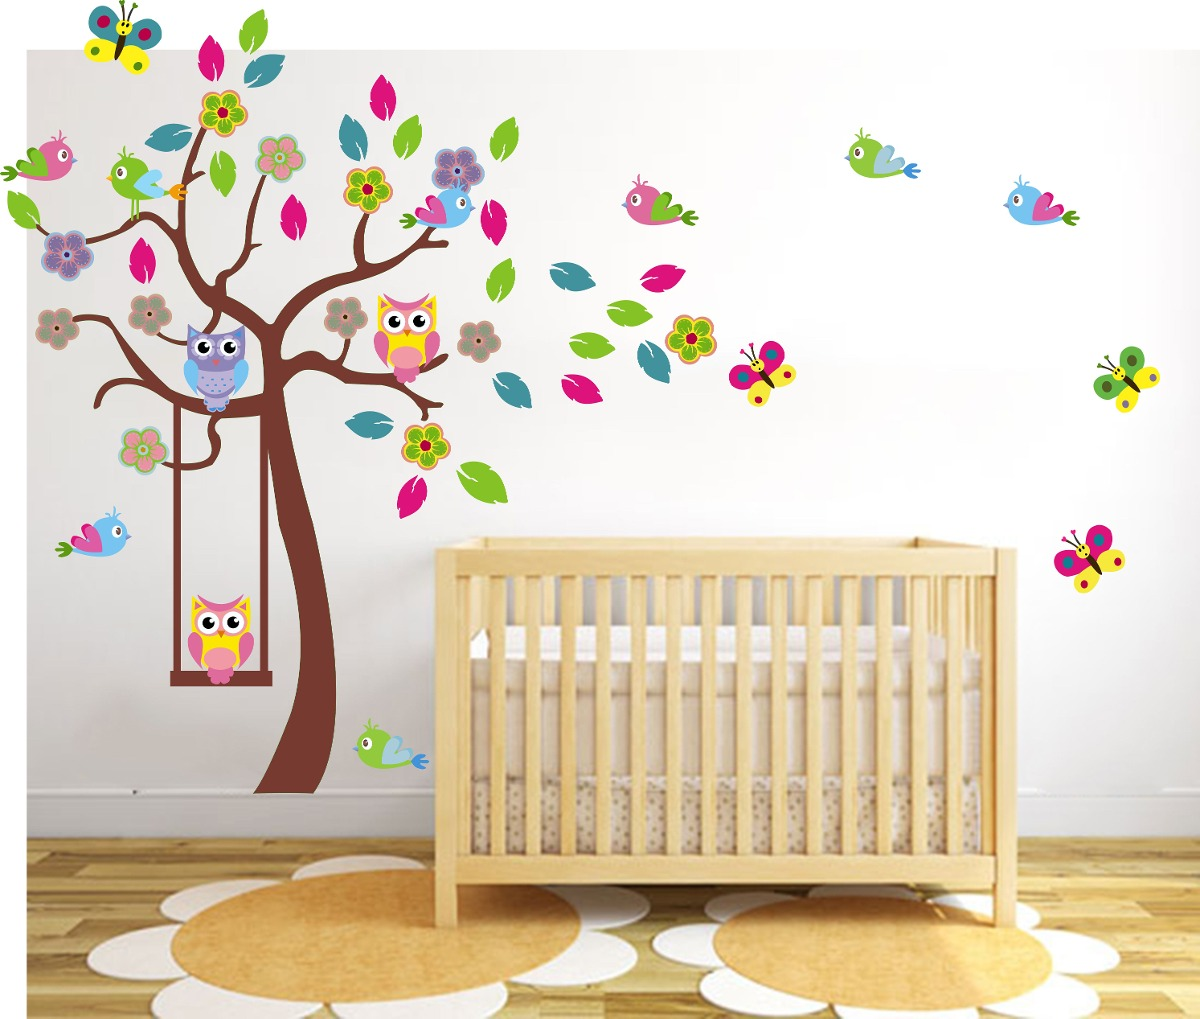 Decoracion pared infantil affordable con with decoracion for Pared habitacion infantil